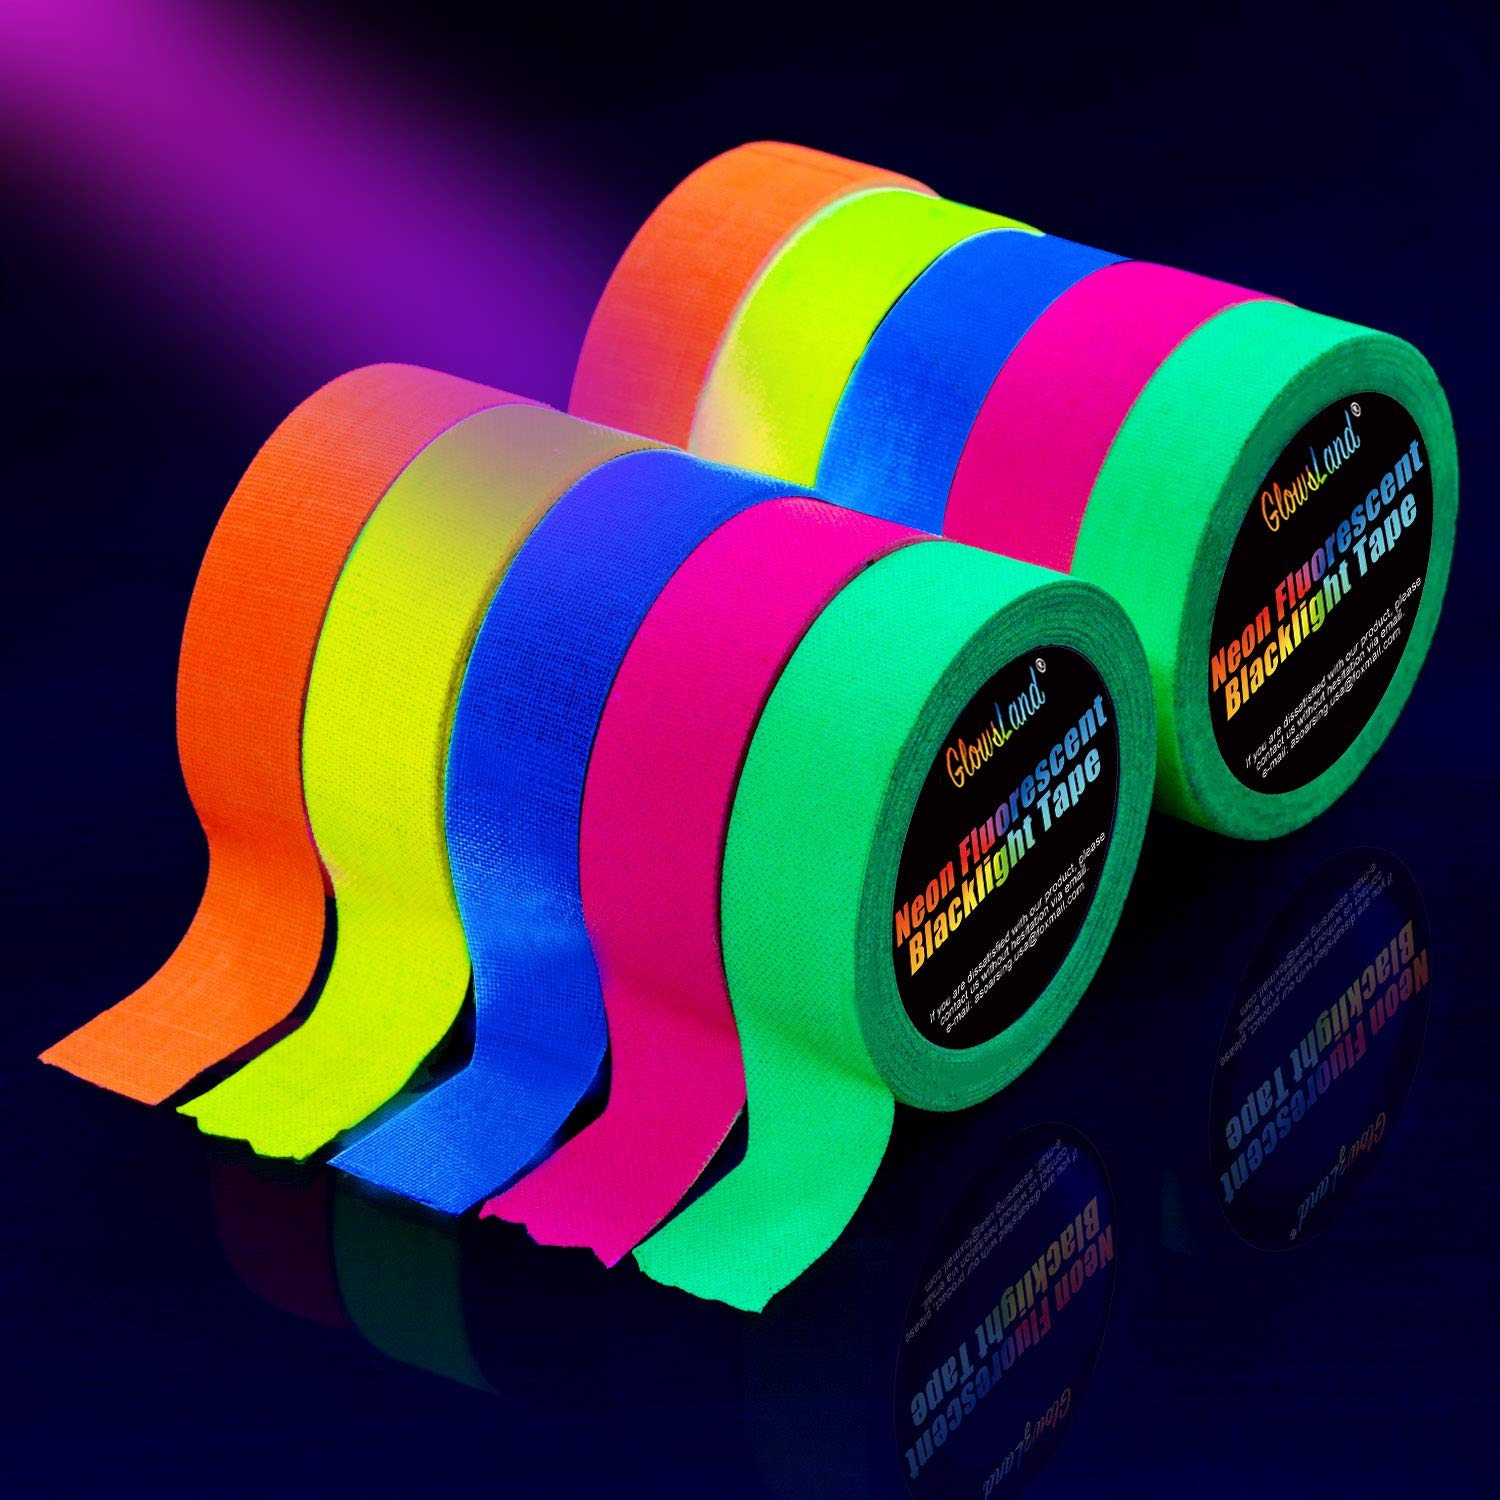 Glowsland Blacklight Party Tape review